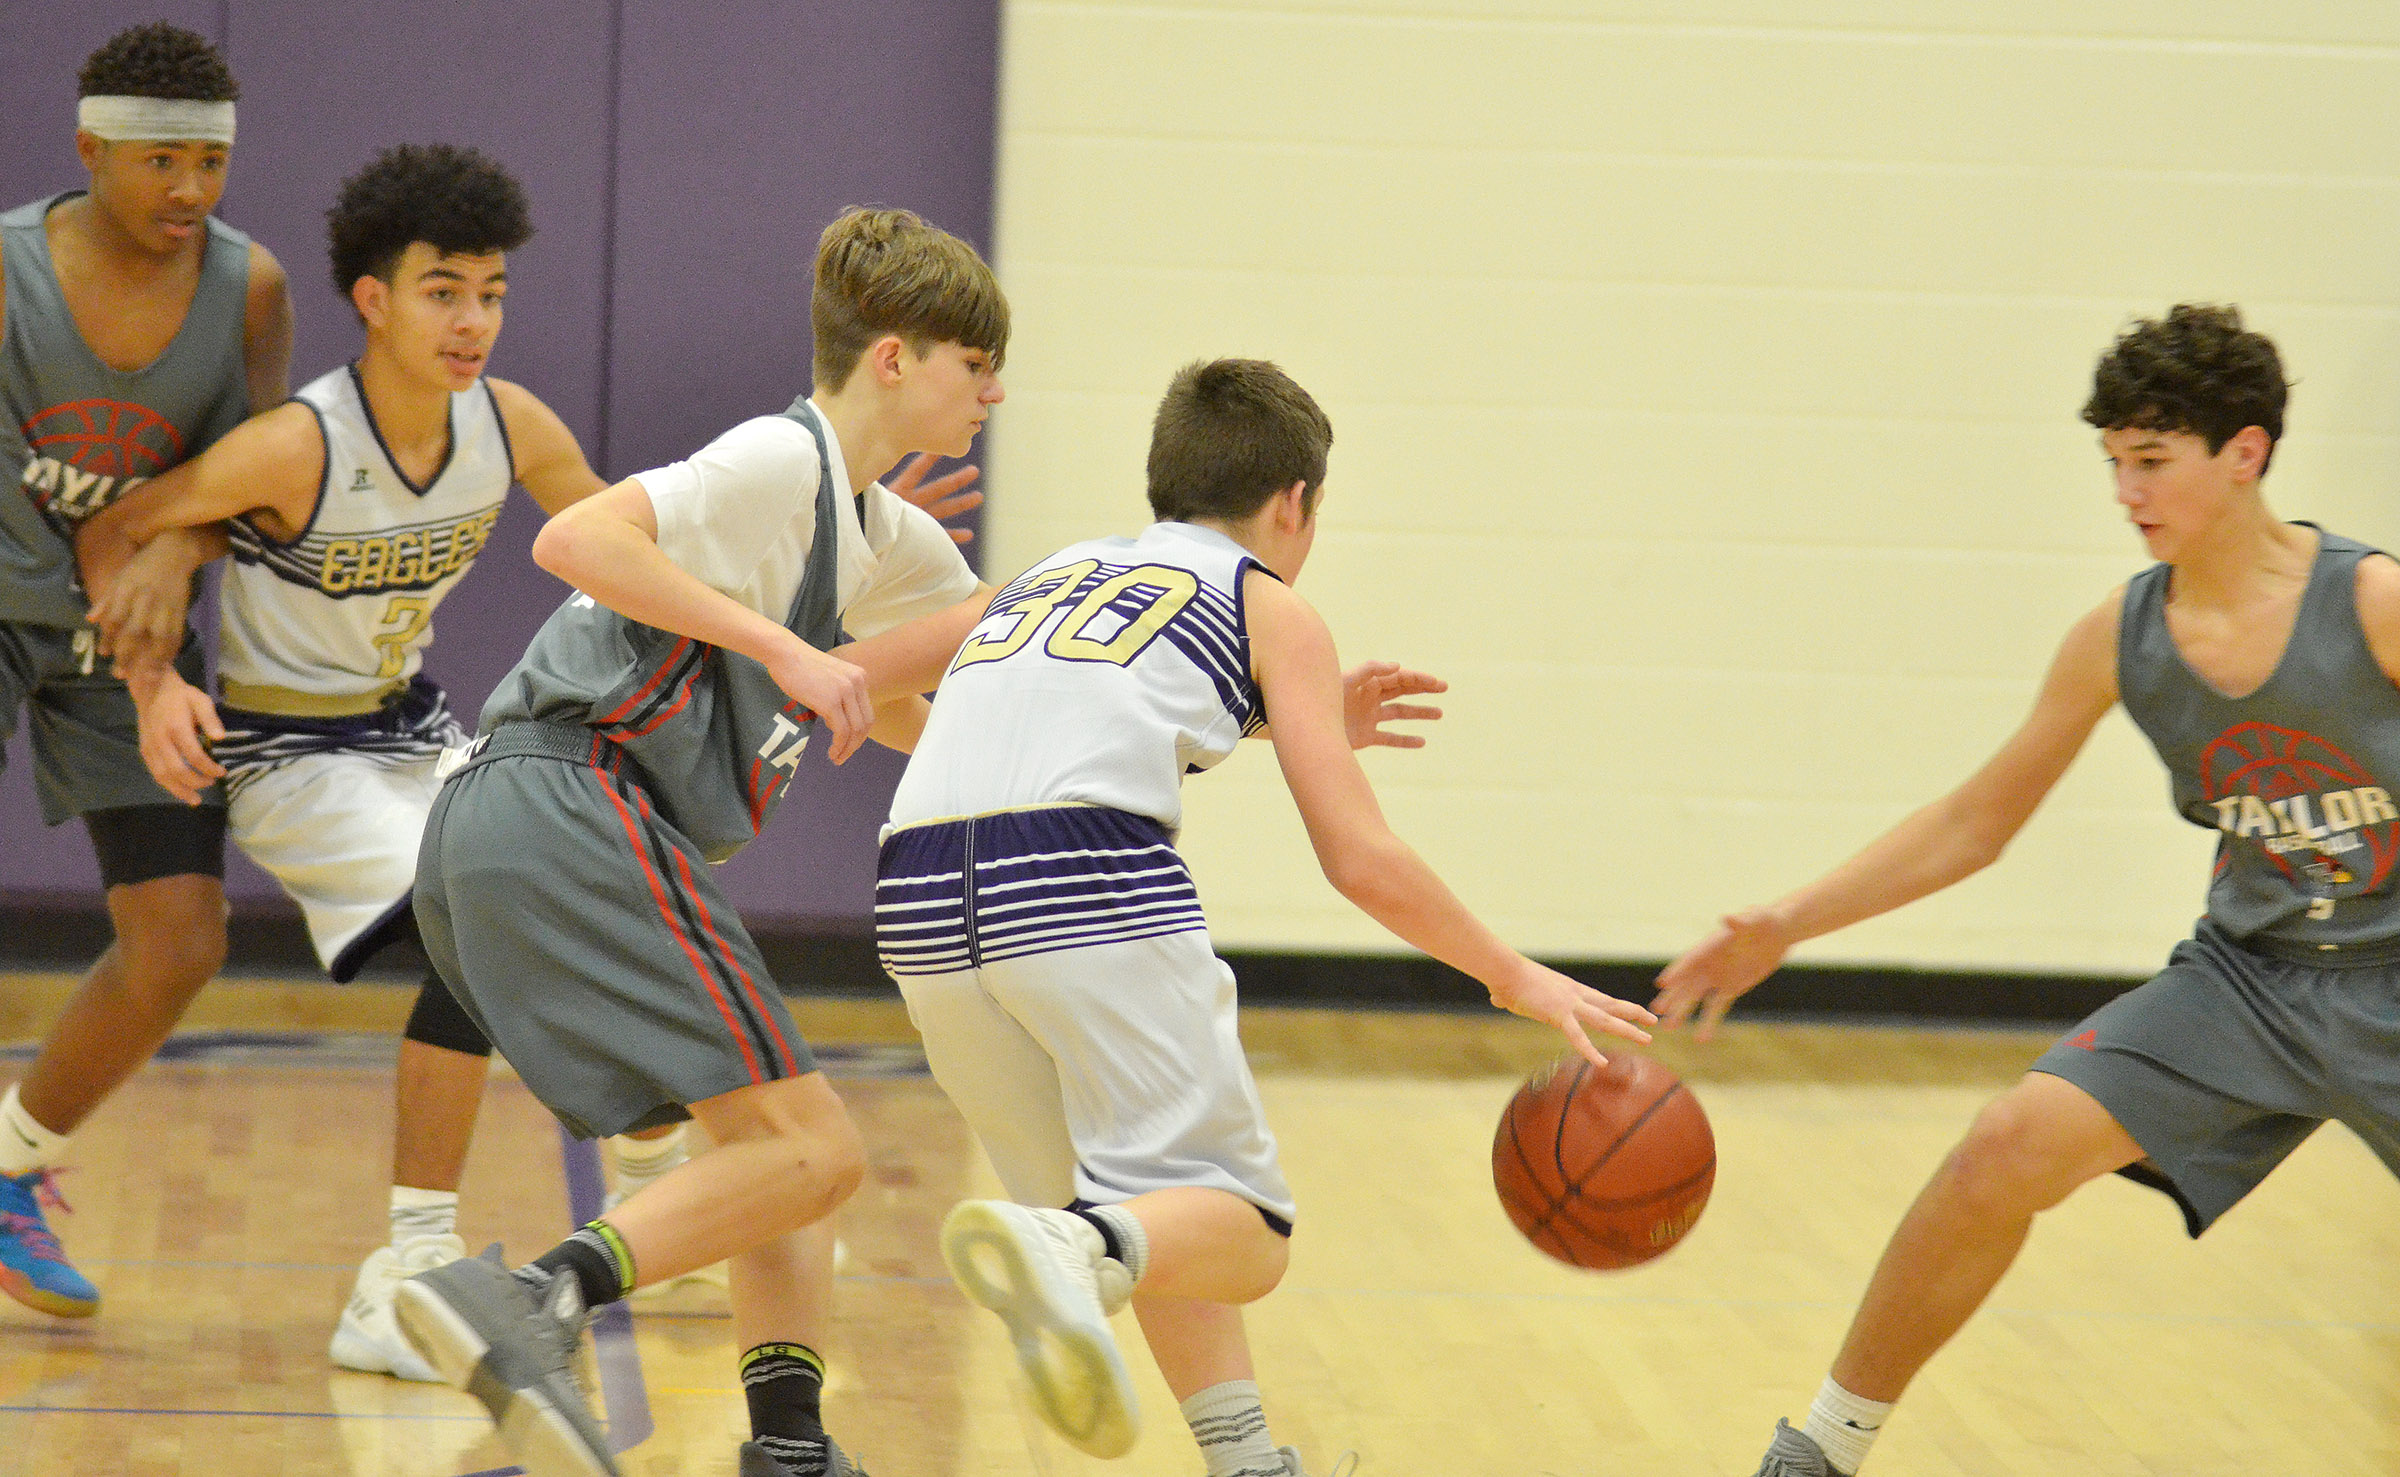 CMS eighth-grader Josh Lucas drives the ball as classmate Adrien Smith plays defense.